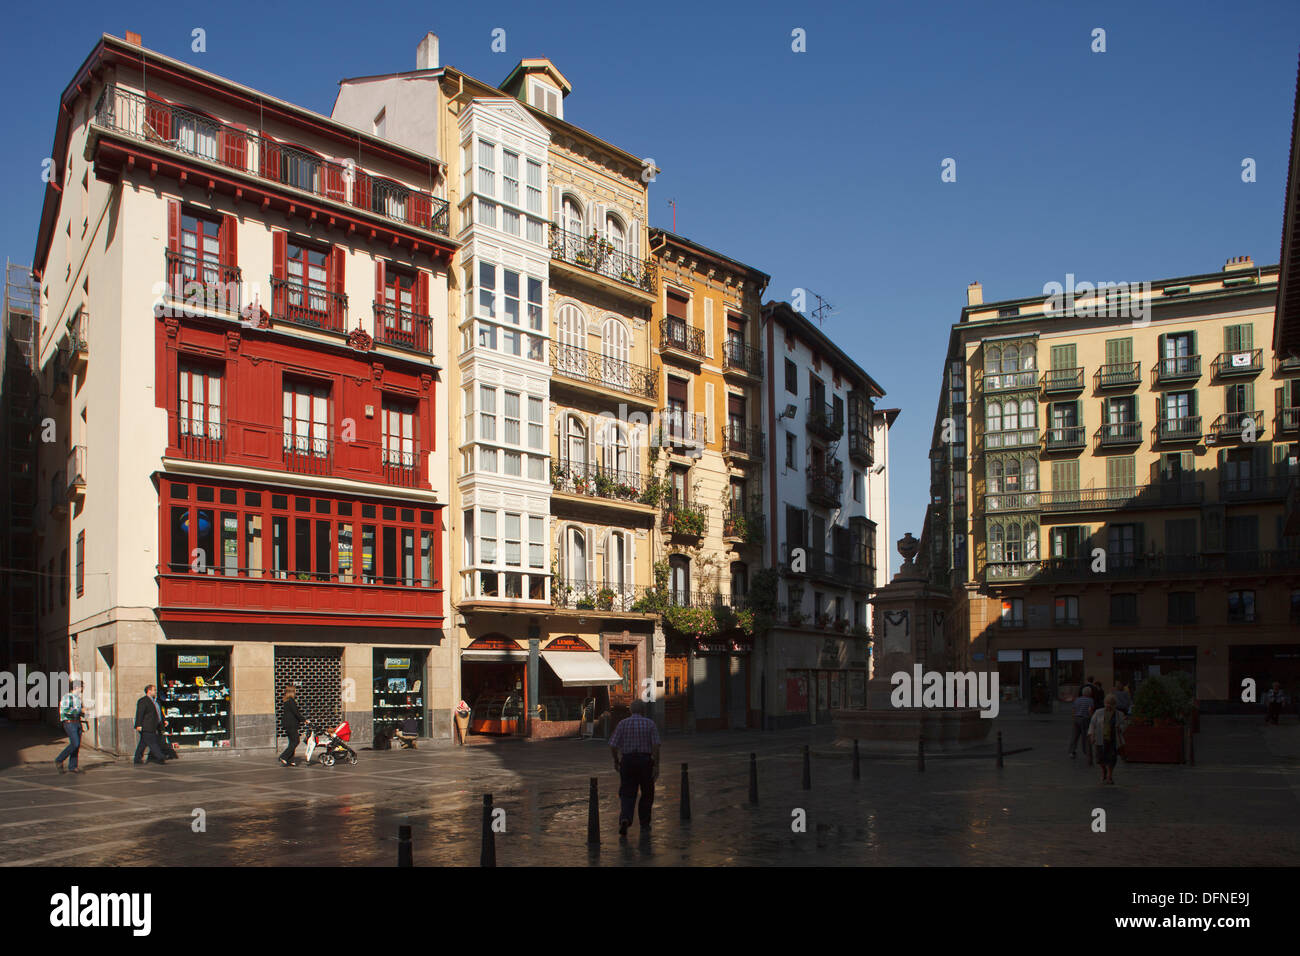 Houses at Plaza del Reverendo Santiago Lasalle square at the old town, Bilbao, Province of Biskaia, Basque Country, Euskadi, Nor - Stock Image